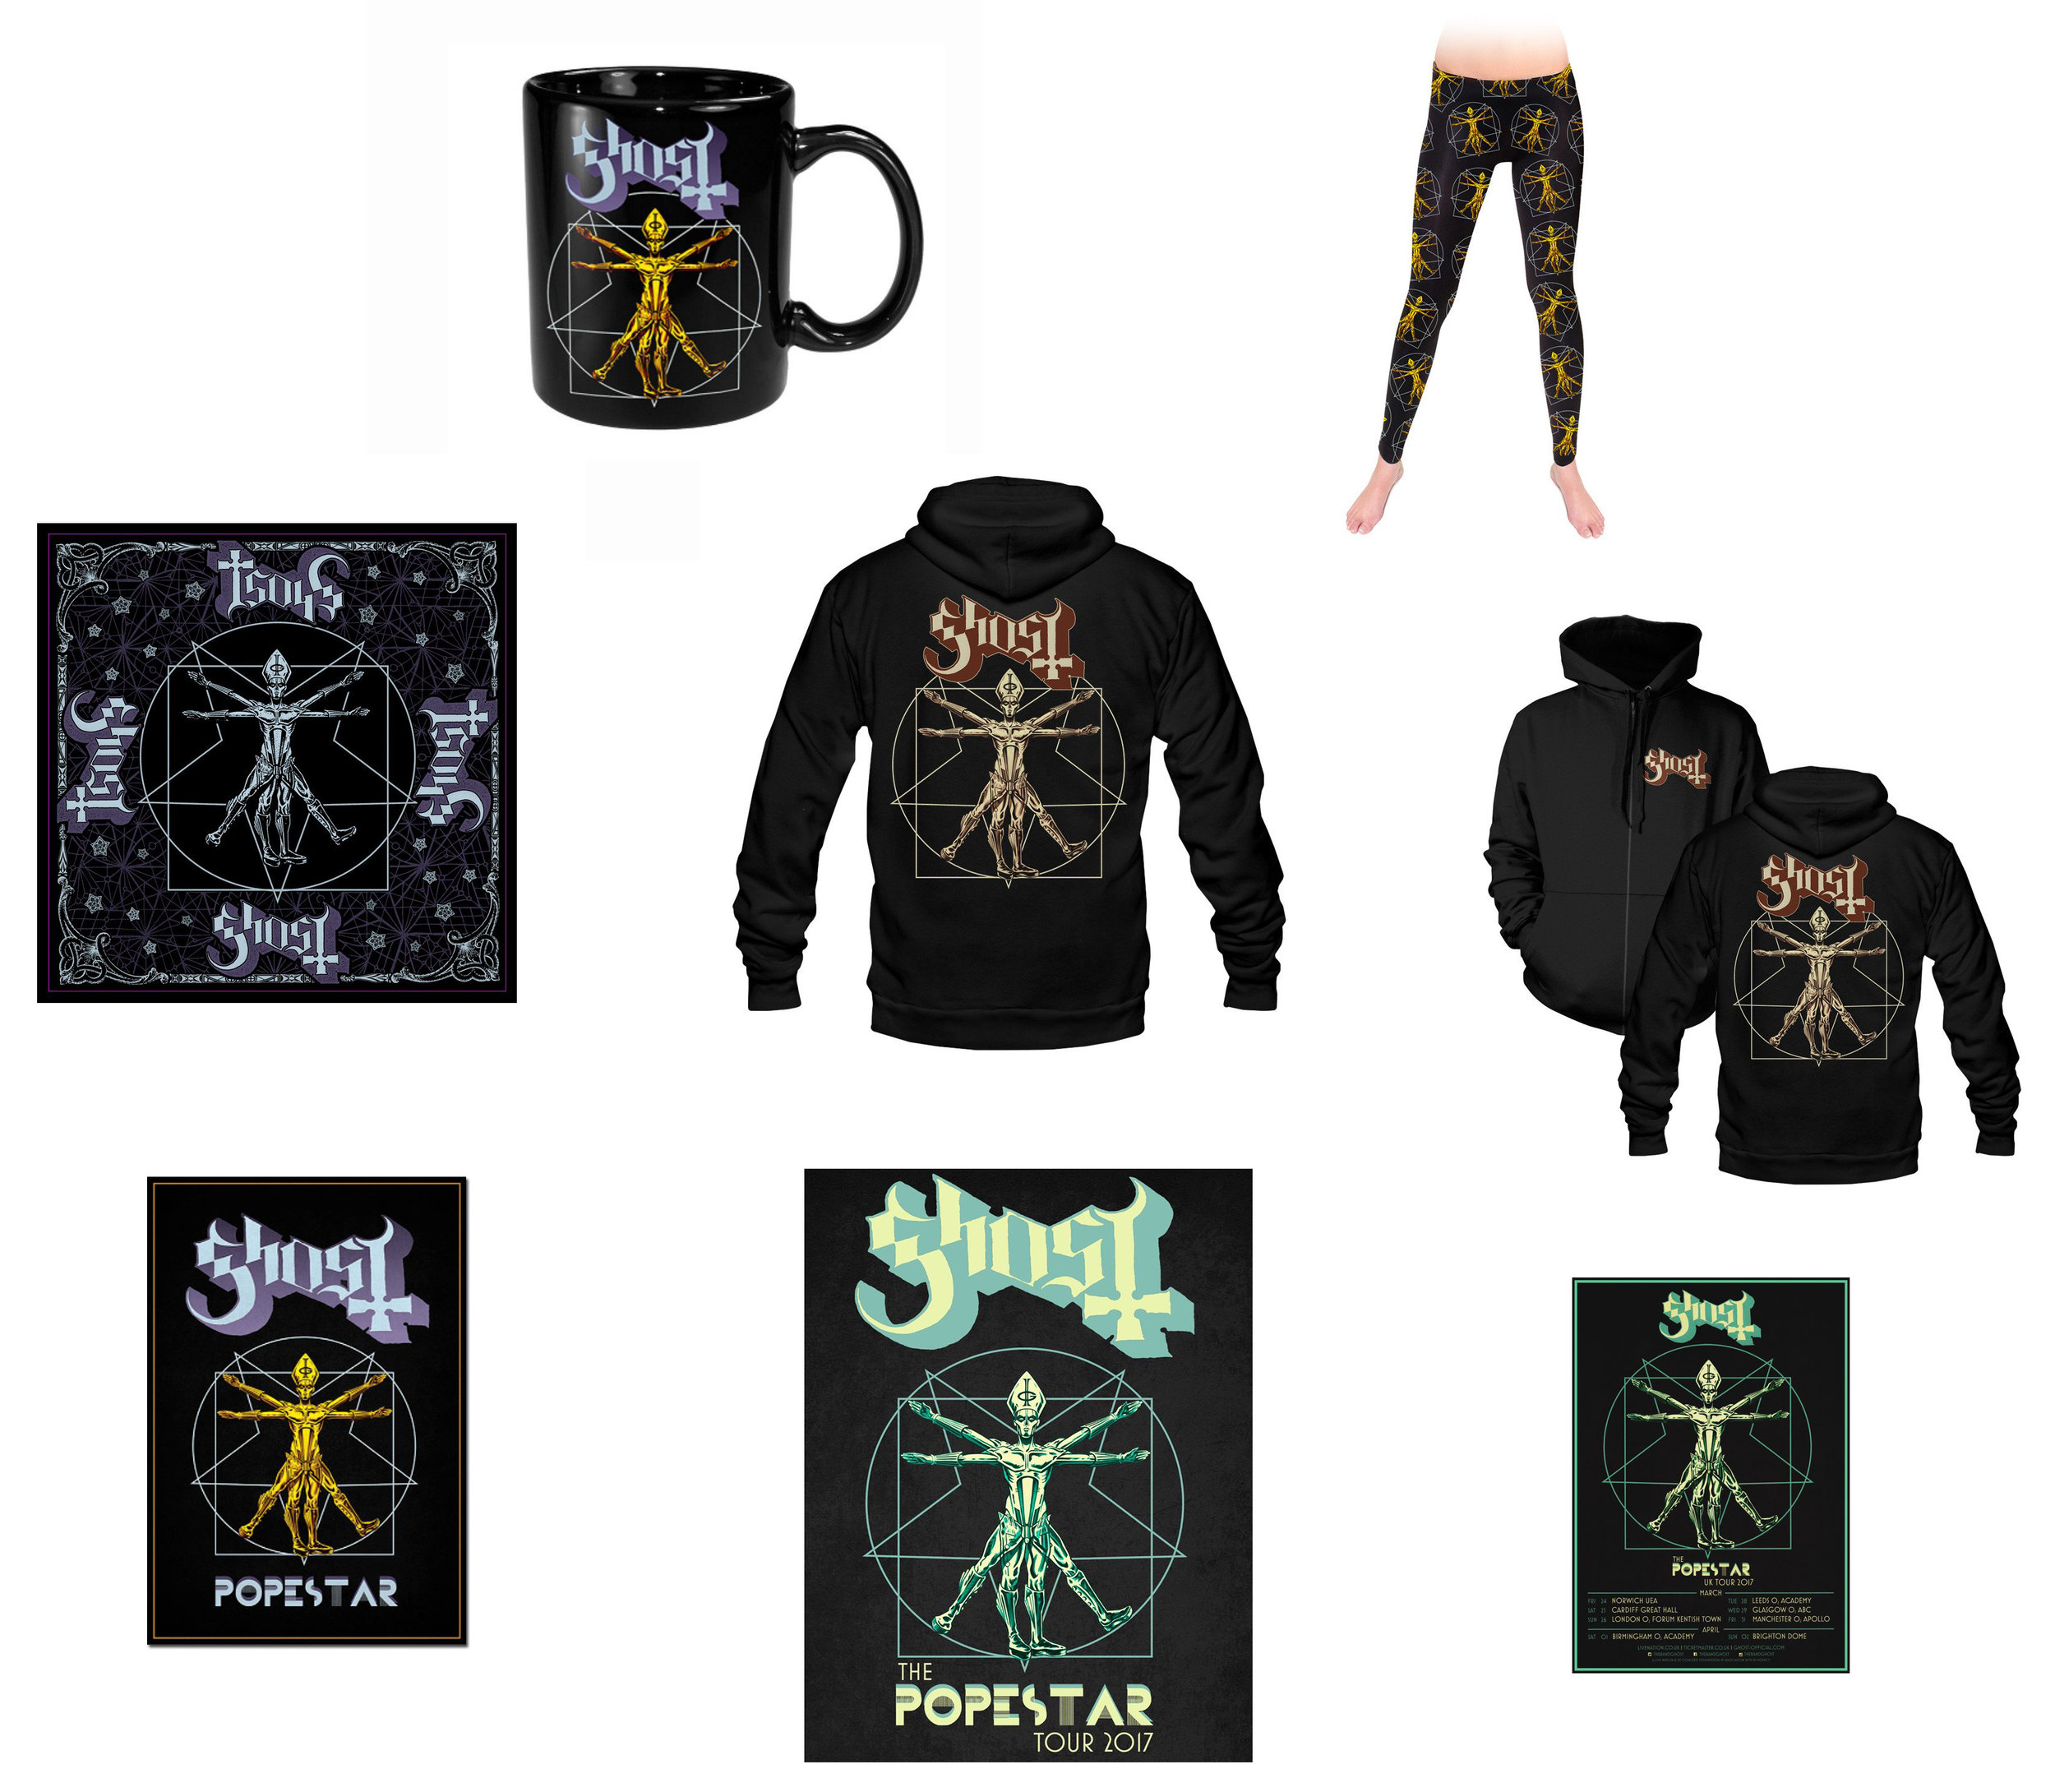 GHOST | Papa Vitruvius    The Popestar Tour 2016 / 2017   Official band Popestar Tour merch